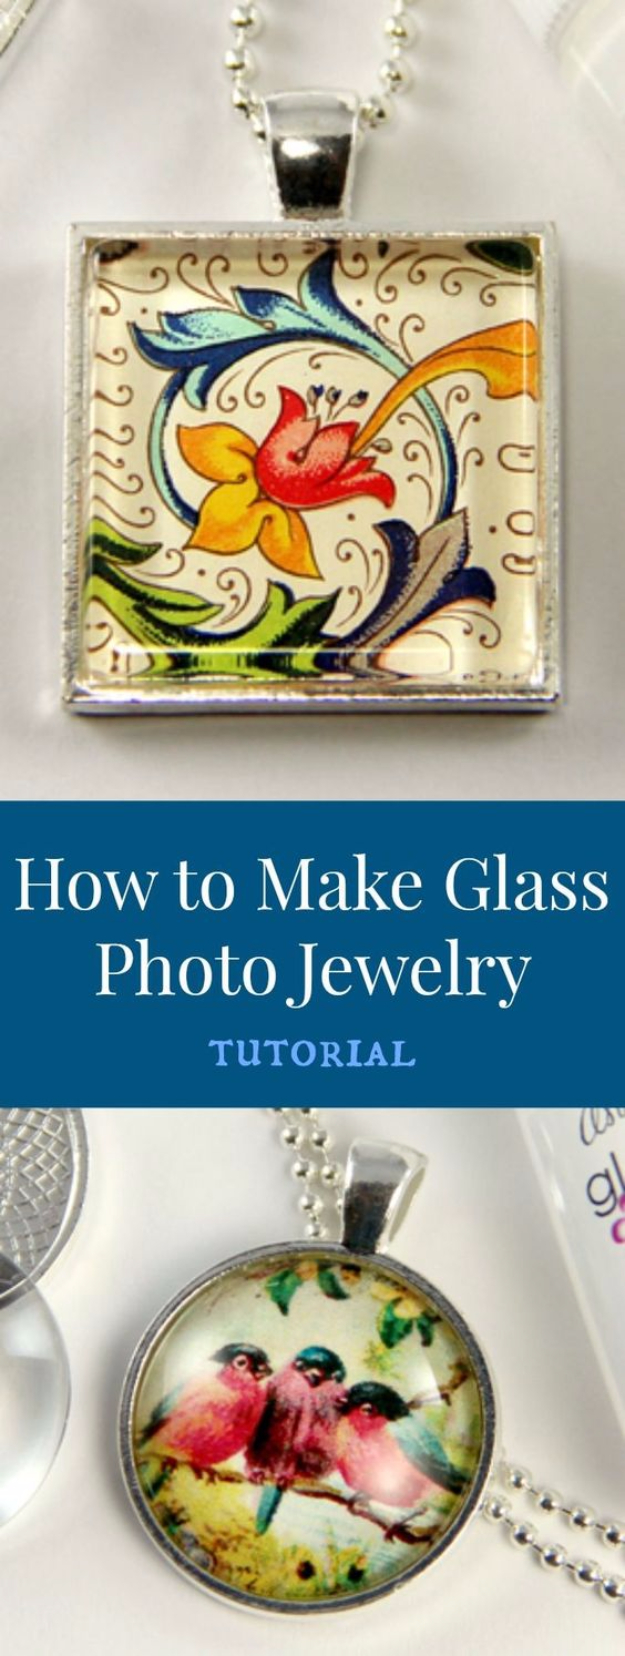 DIY Photo Crafts and Projects for Pictures - Glass Photo Jewelry - Handmade Picture Frame Ideas and Step by Step Tutorials for Making Cool DIY Gifts and Home Decor - Cheap and Easy Photo Frames, Creative Ways to Frame and Mount Photos on Canvas and Display Them In Your House